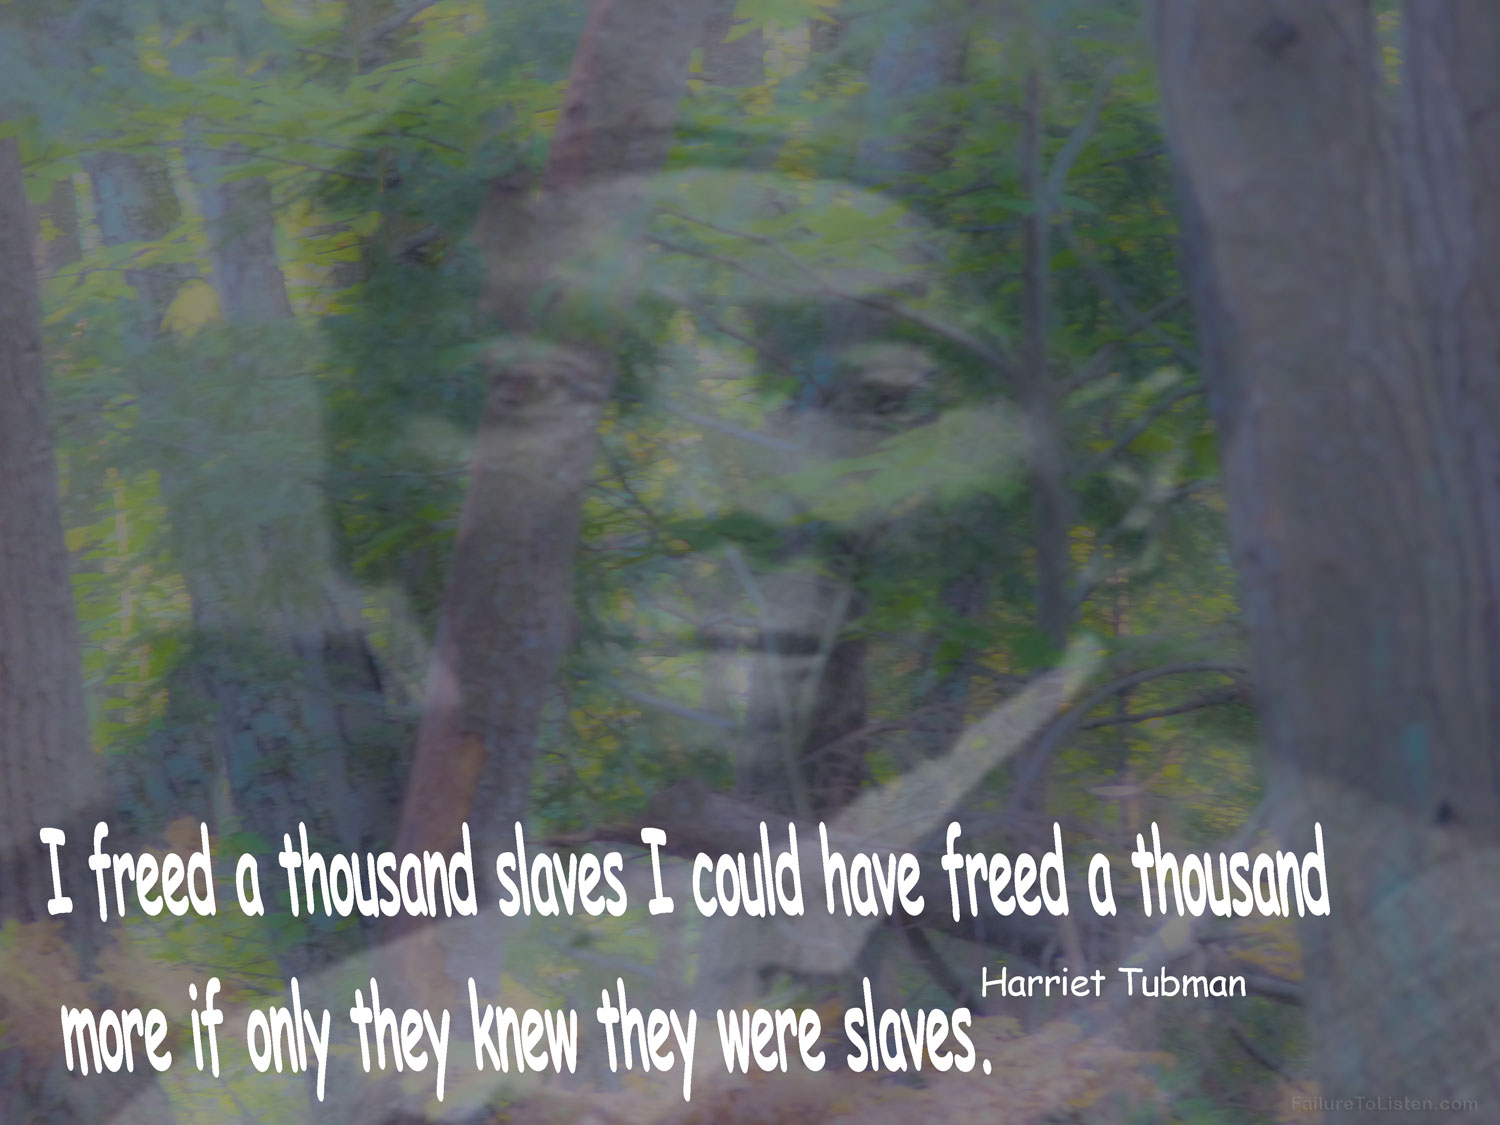 harriettubman_freeslaves